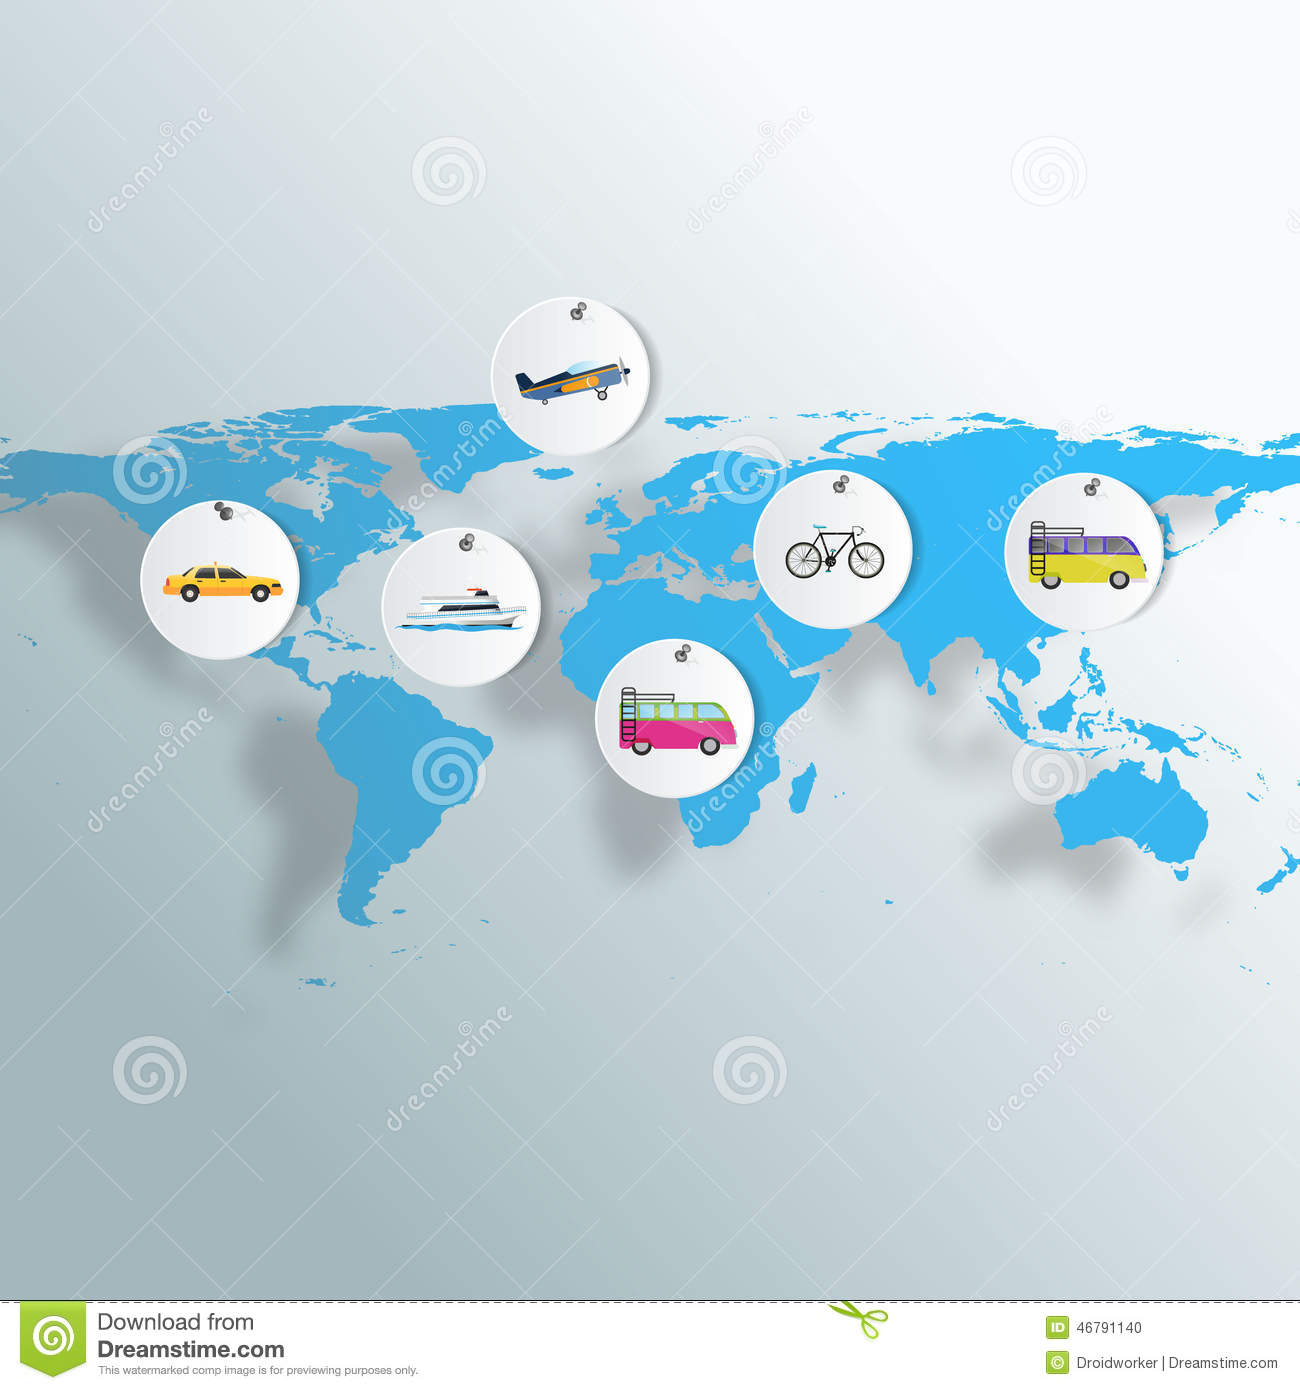 Tourism infographic elements set with world map travel tourism infographic elements set with world map travel destinations vector illustration gumiabroncs